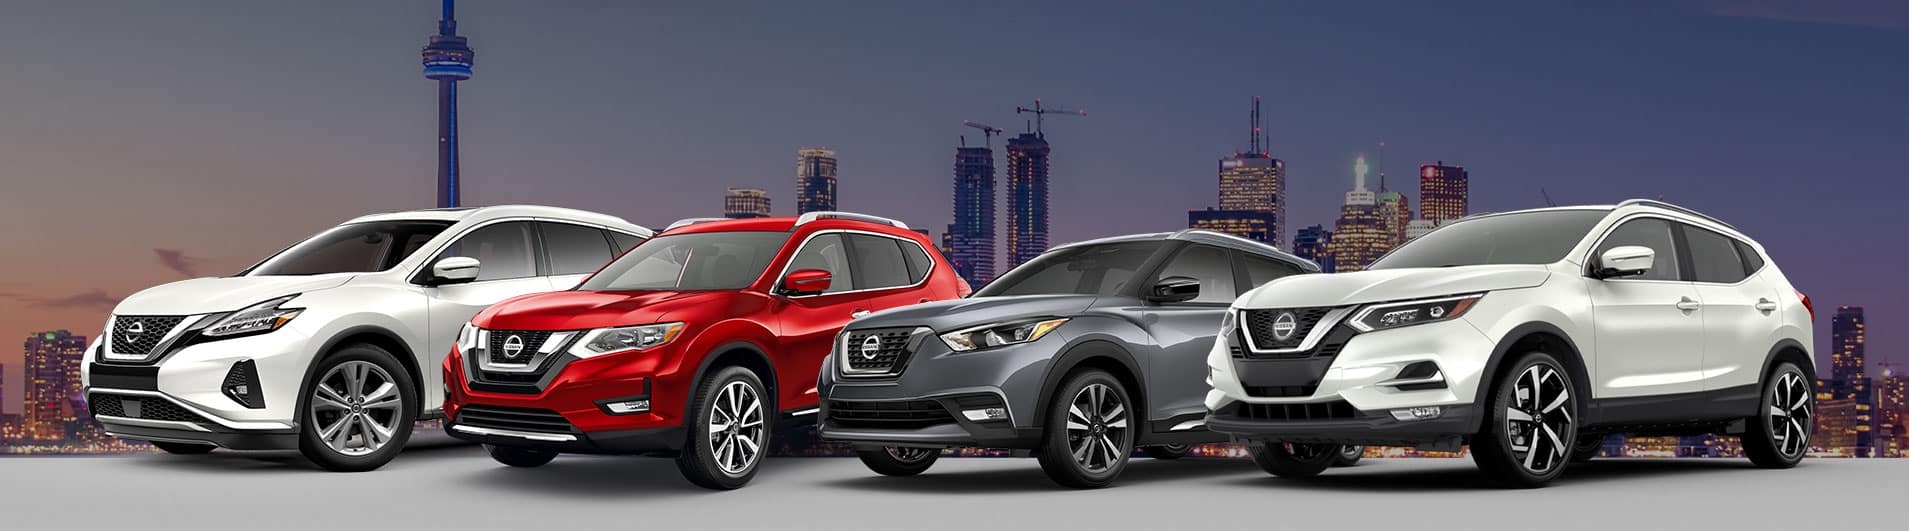 2021 & 2020 Nissan new models at Agincourt Nissan